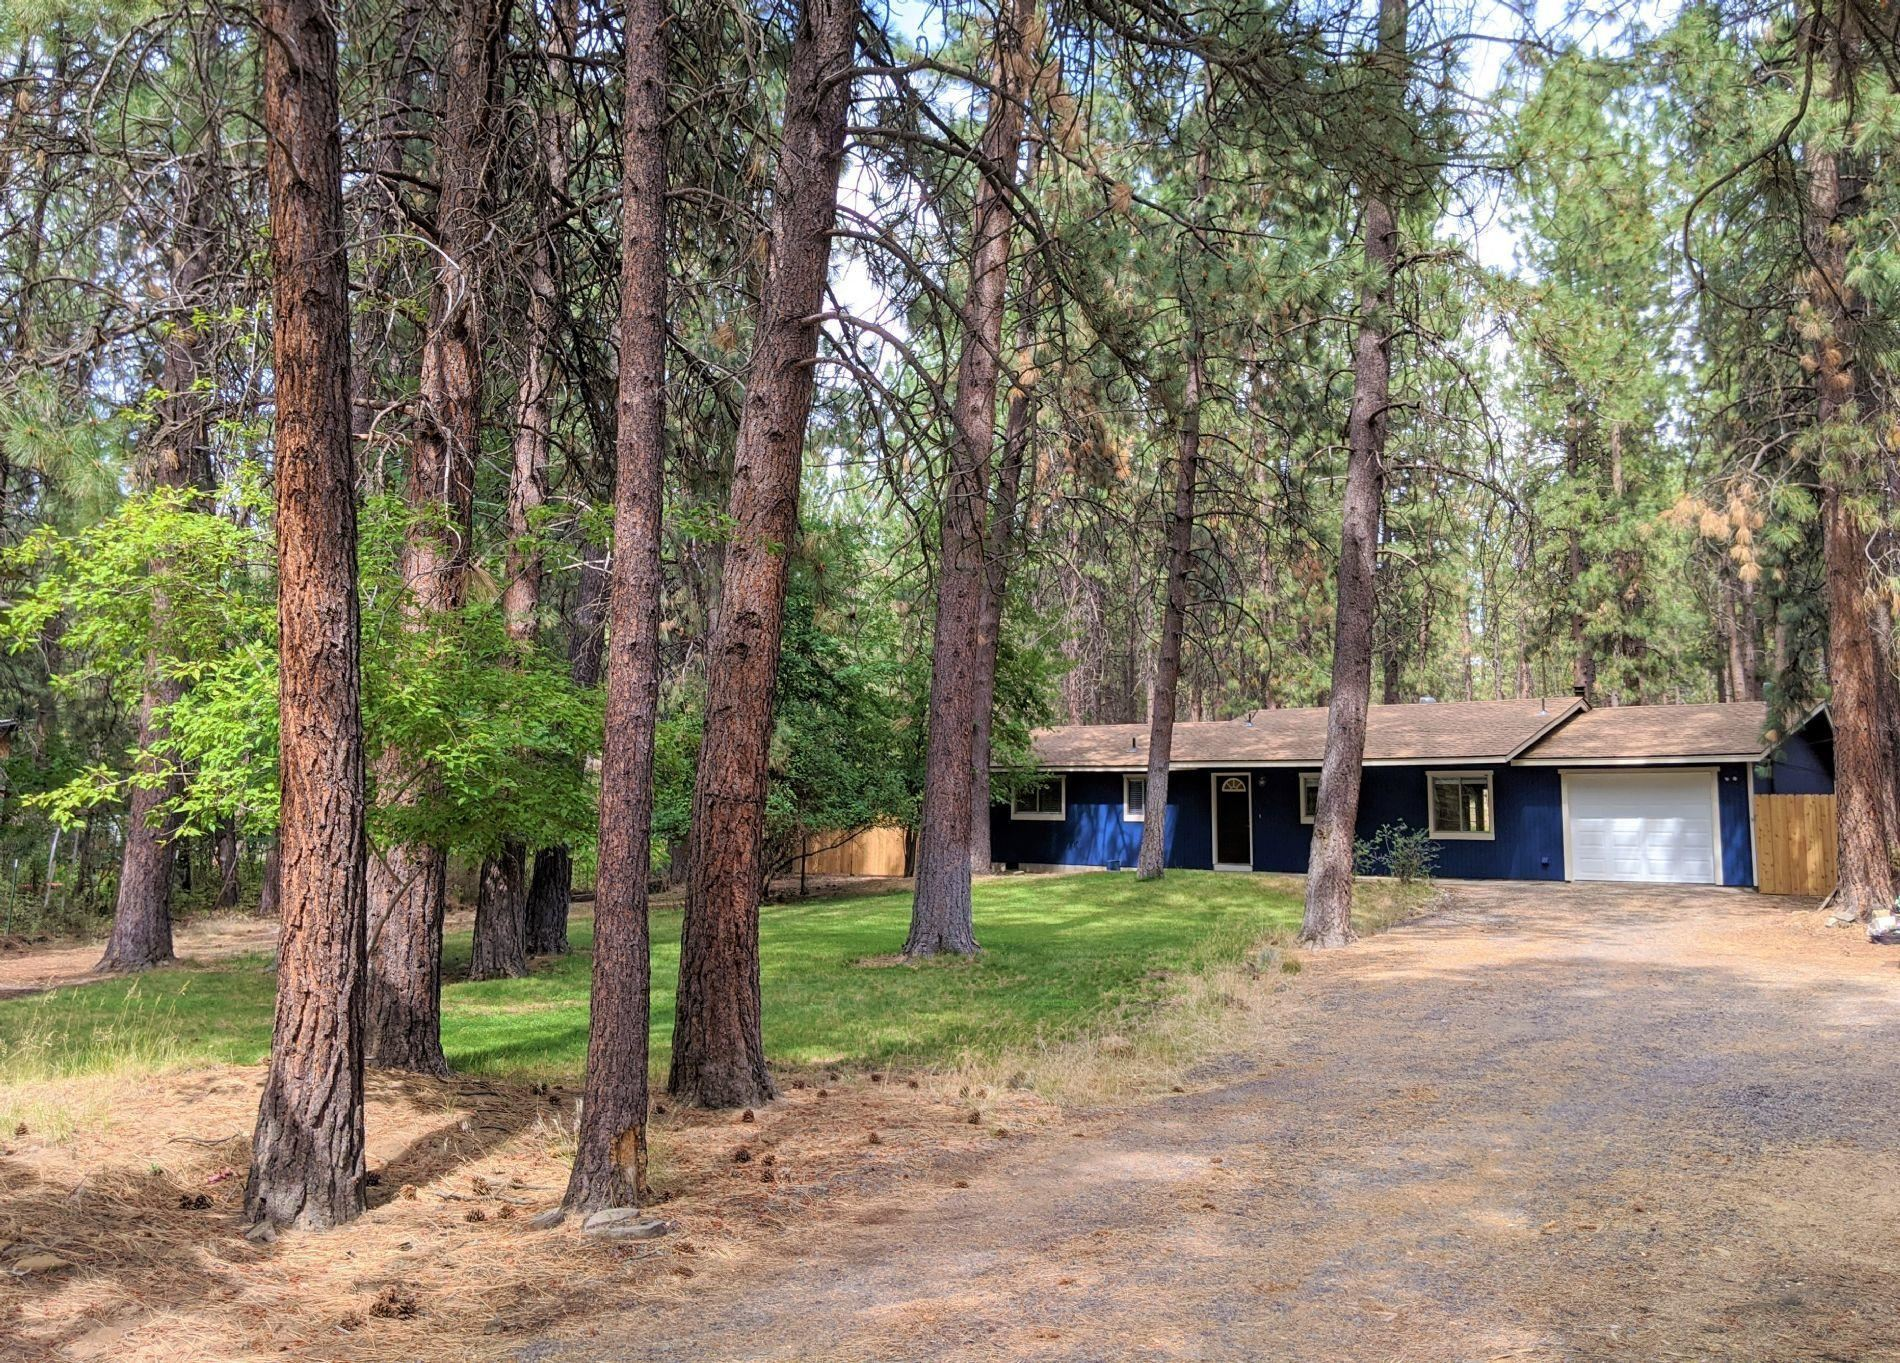 Photo of 60140 Agate Road, Bend, OR 97702 (MLS # 220106209)